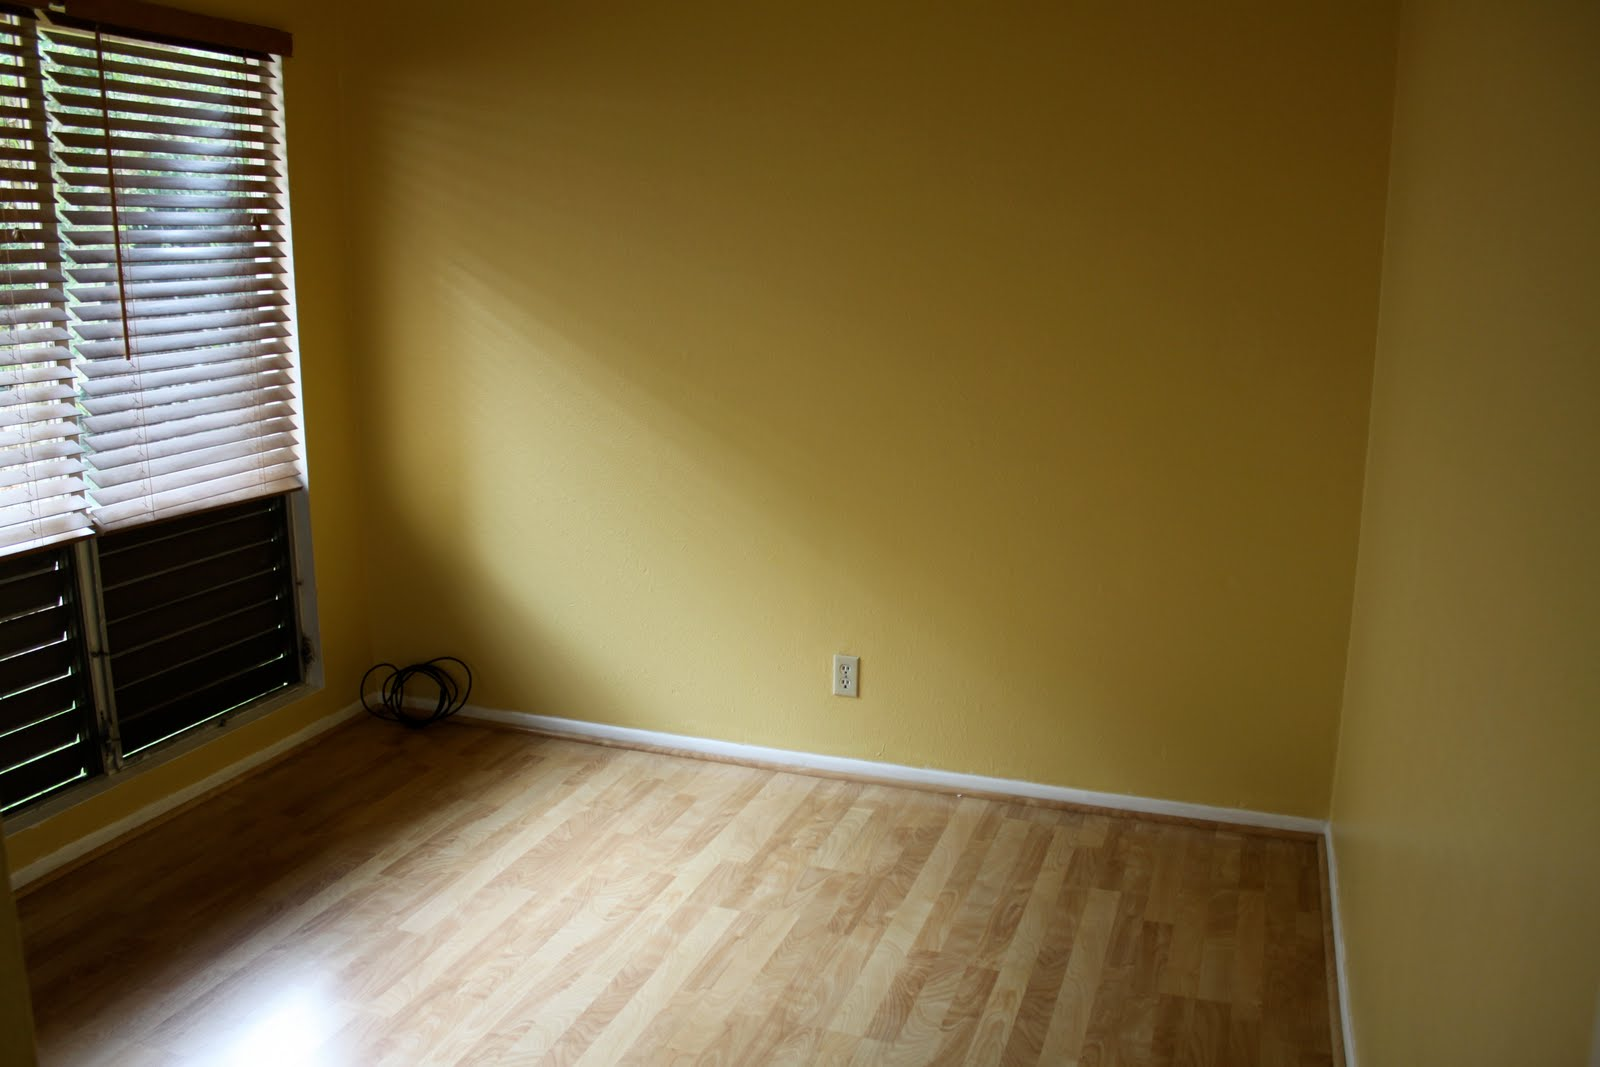 Small Guest Bedroom But Enough Room For Full Bed And Side Tables Theres A Closet On The Wall You Cant See Too Of Course